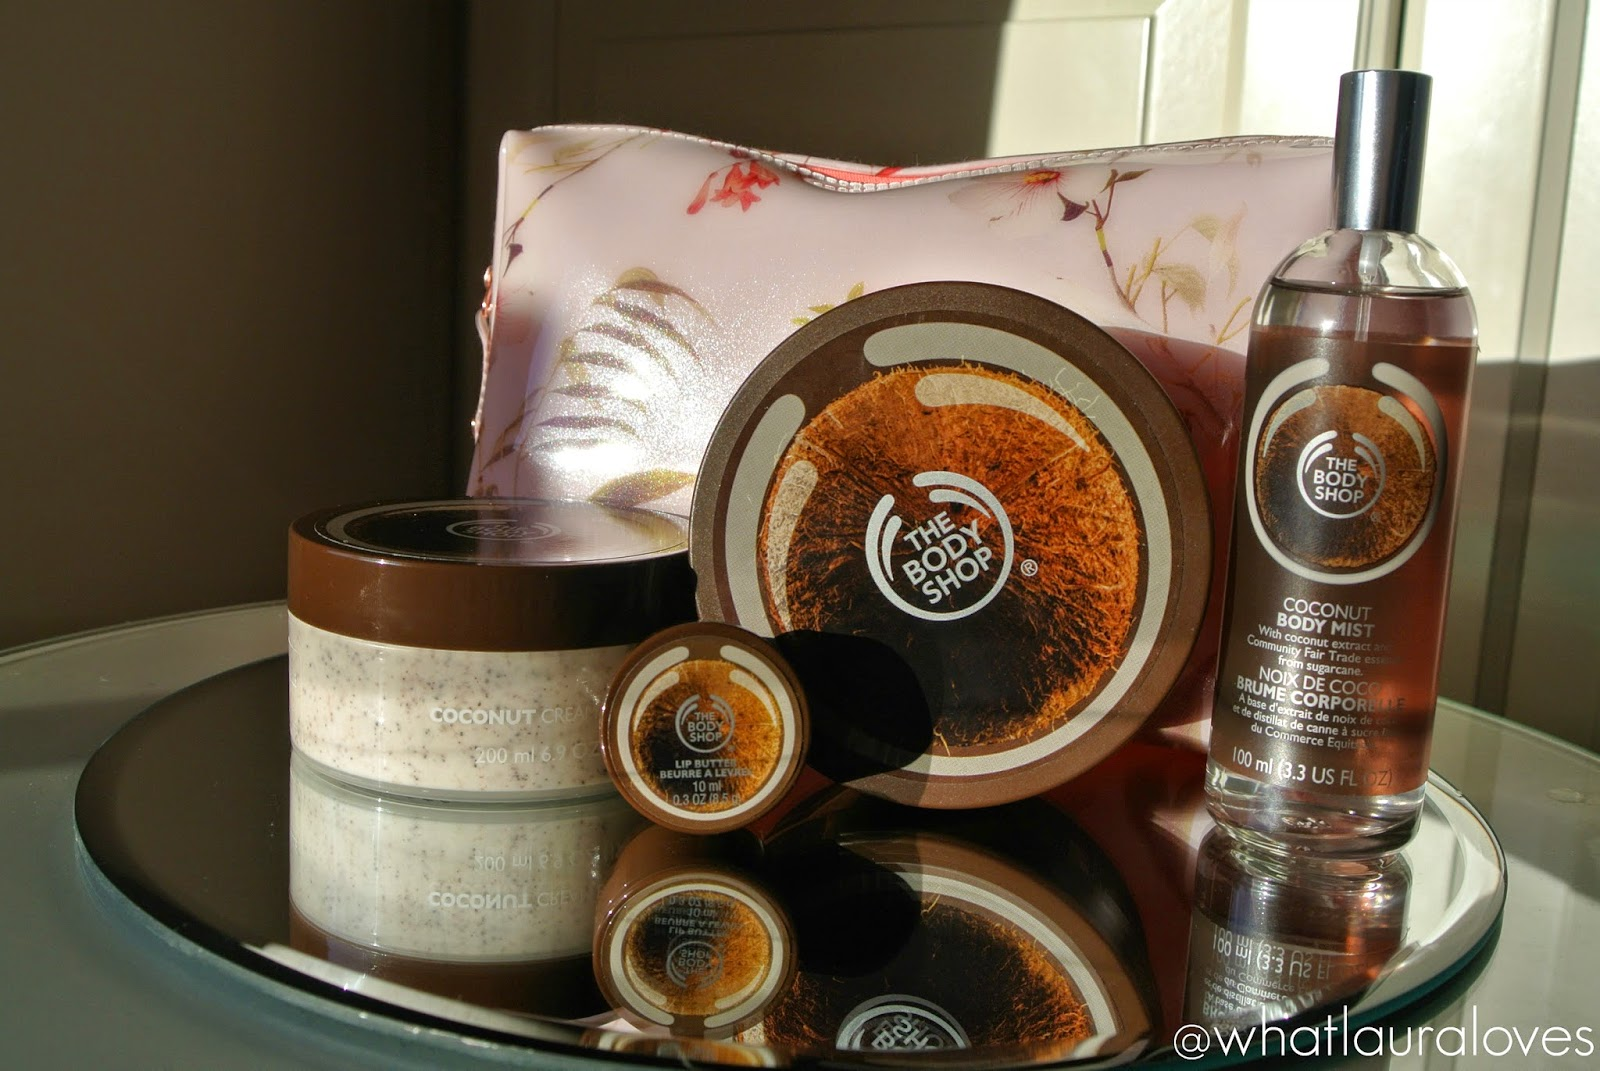 The Body Shop Coconut Range Gift Set